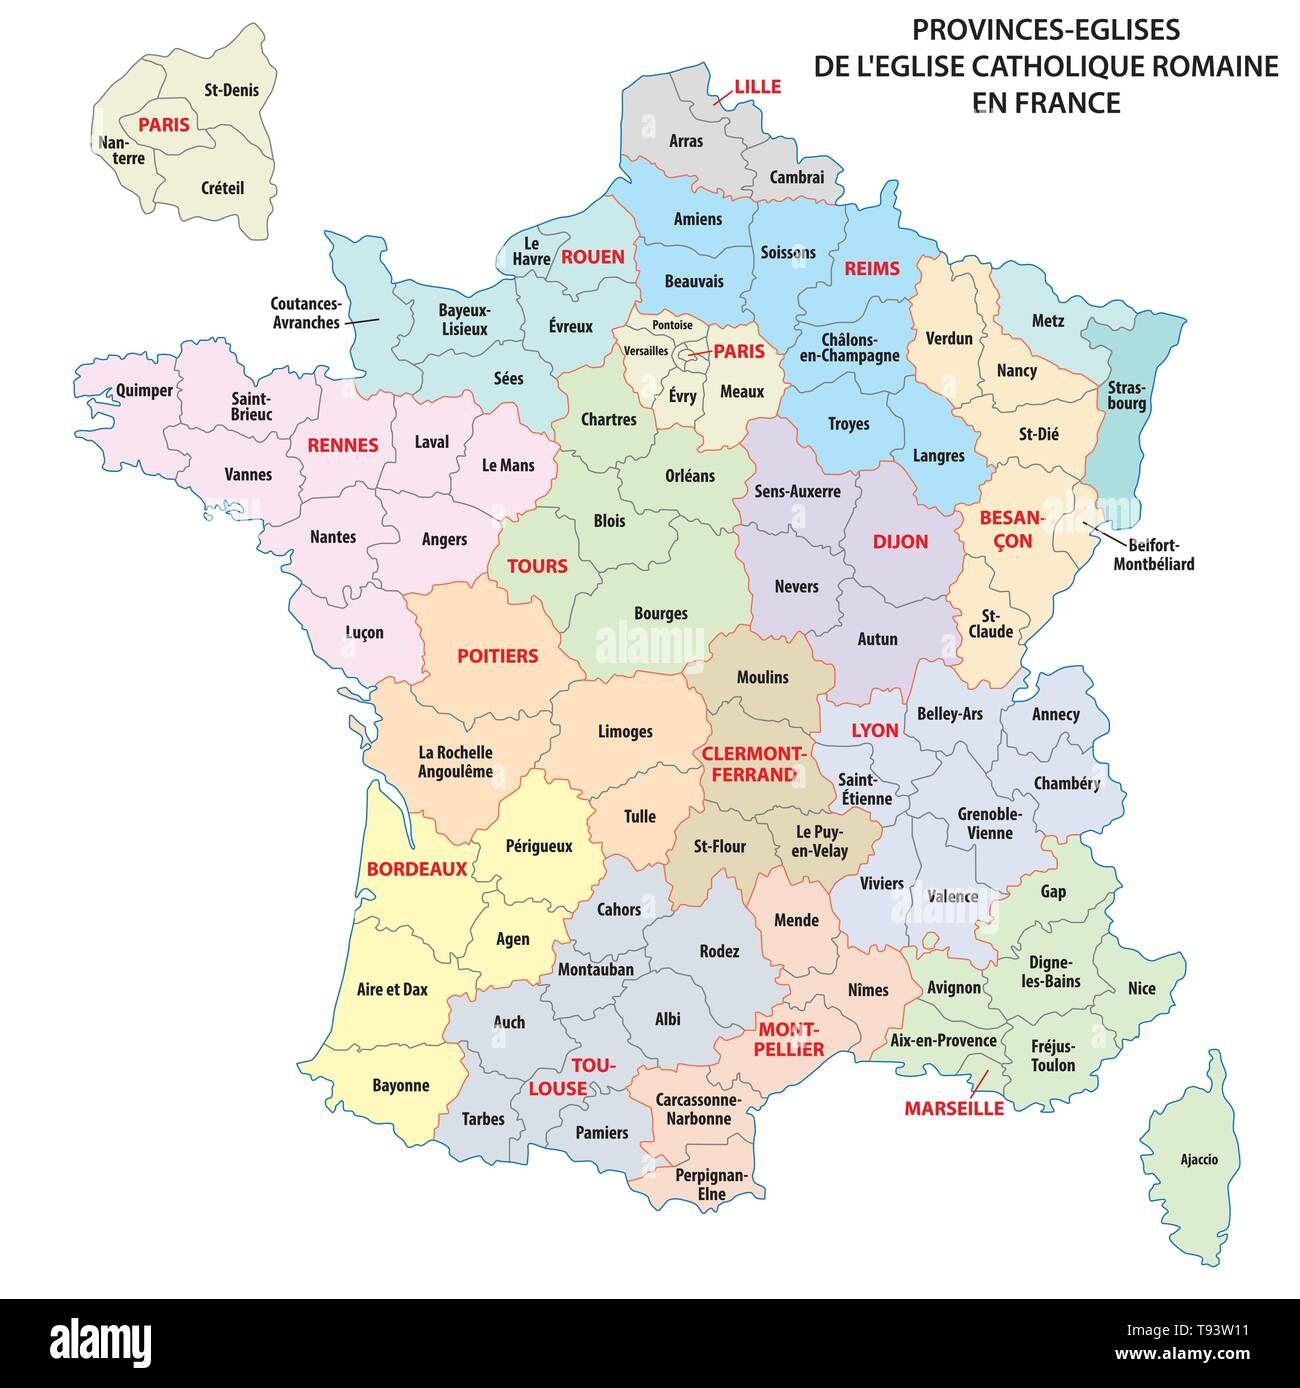 Map Of Provinces In France.Map Of The Roman Catholic Church Provinces In France Stock